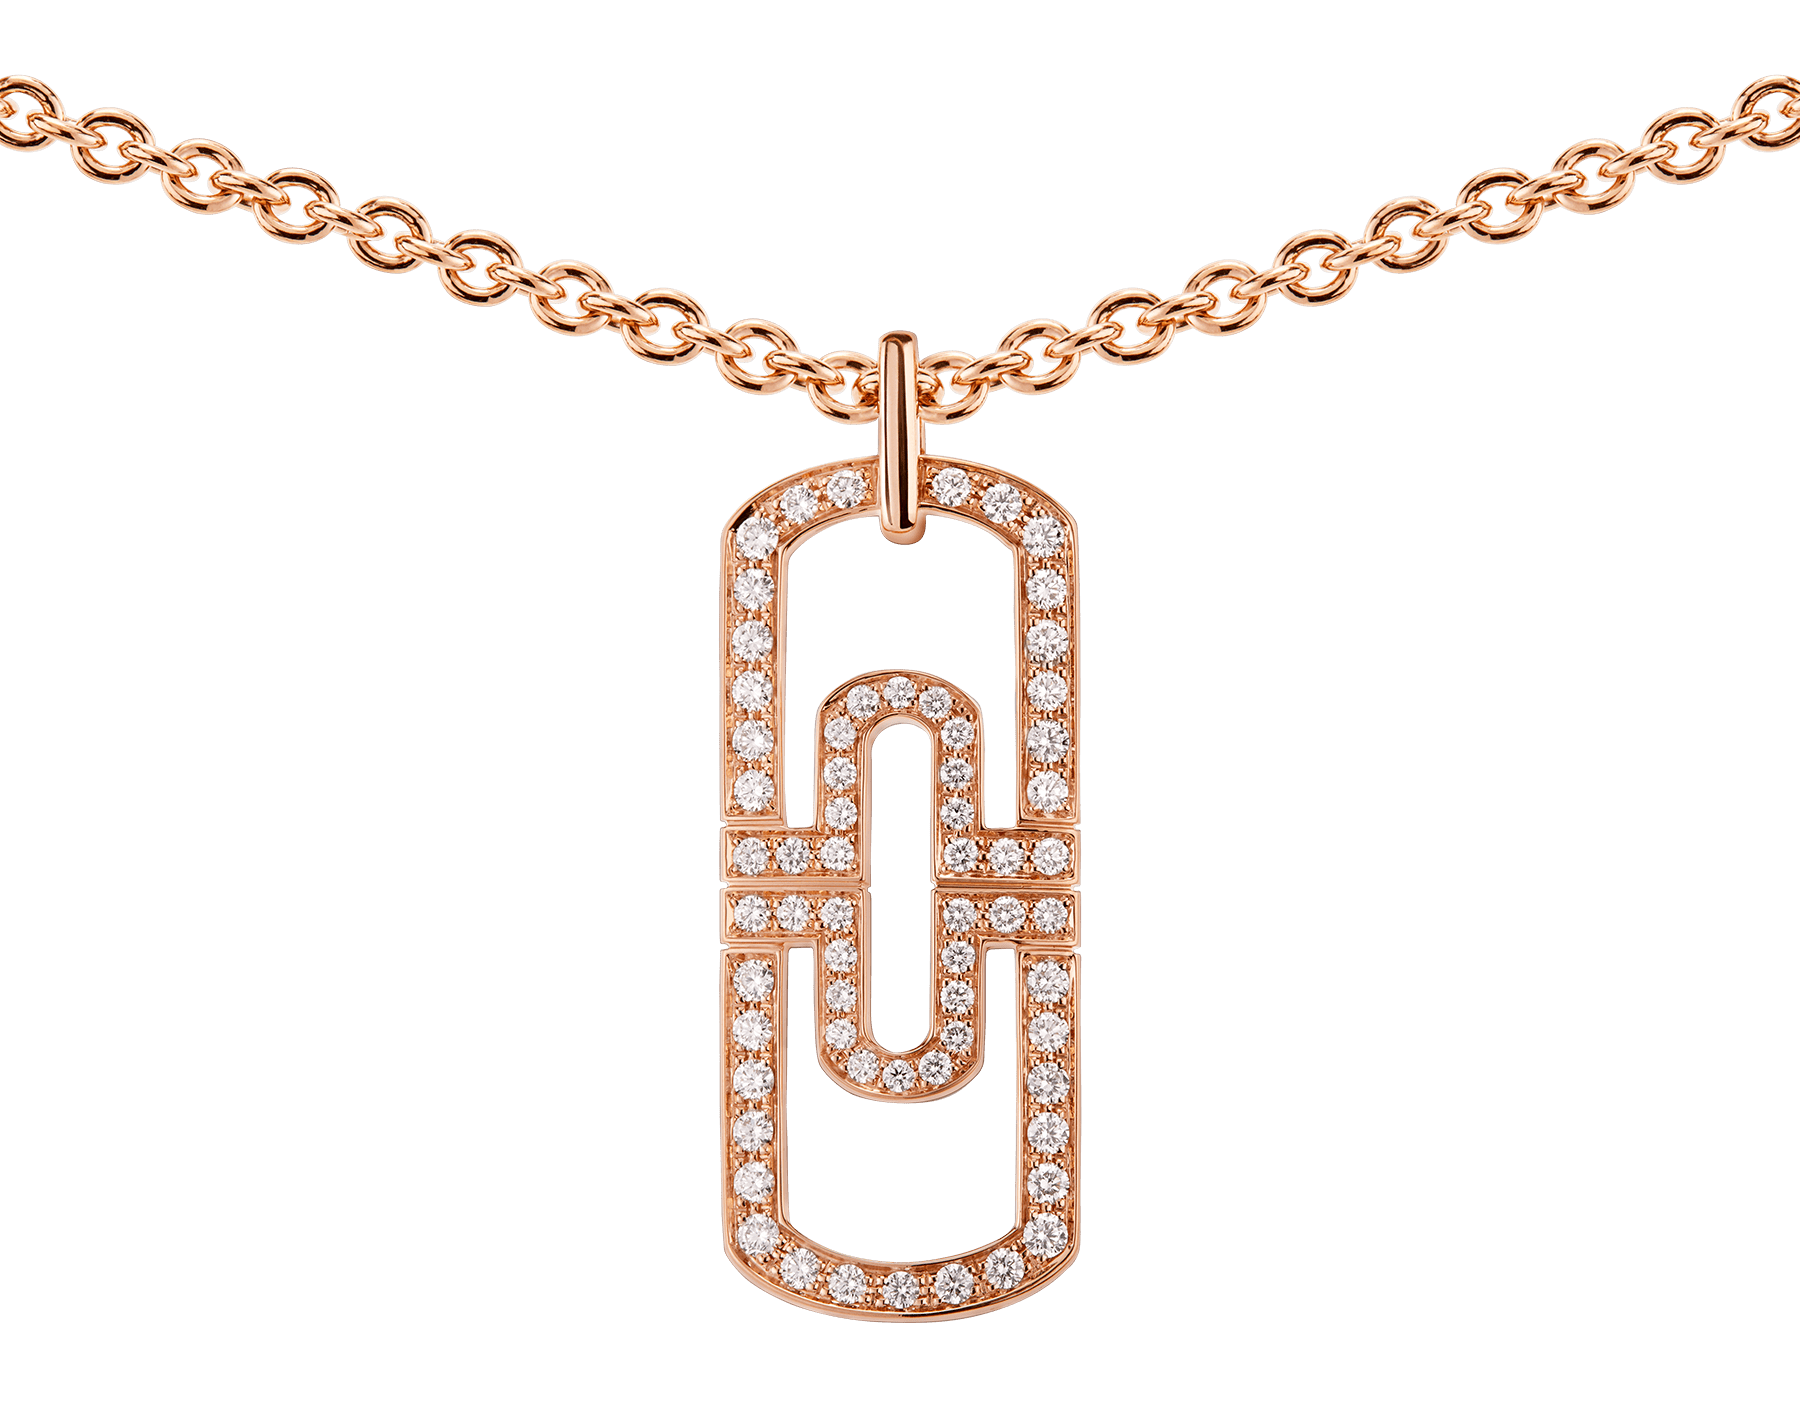 Parentesi necklace with 18 kt rose gold chain and 18 kt rose gold pendant set with full pavé diamonds 349184 image 3